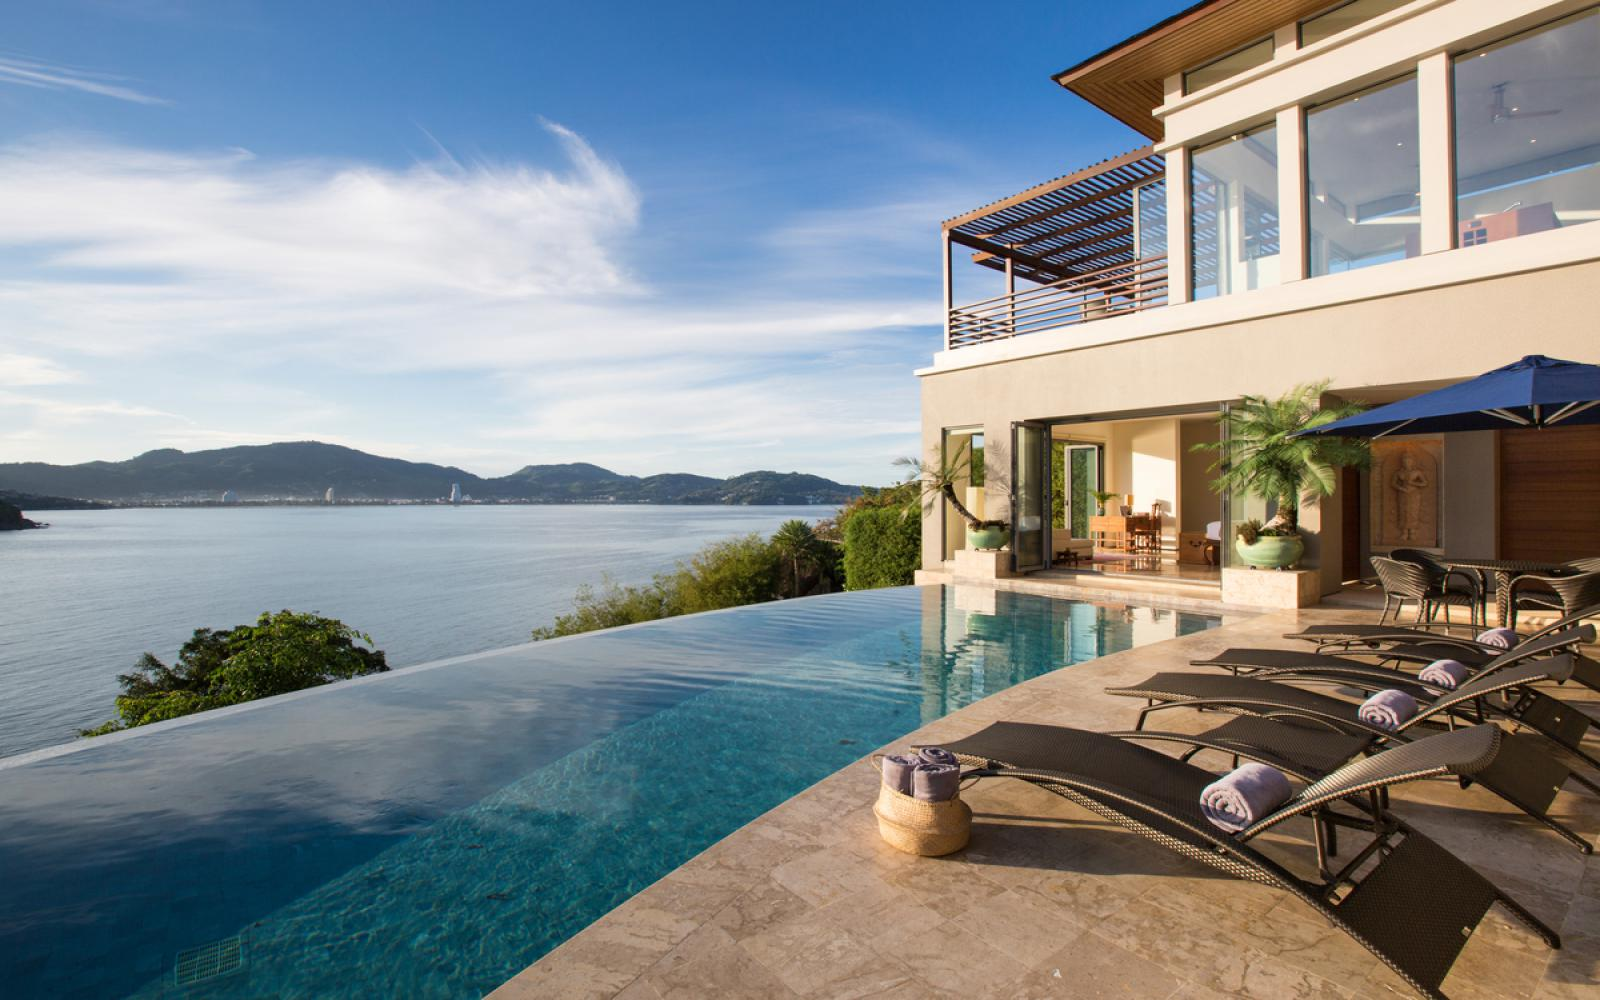 Cost Of Spa Treatments In Phuket